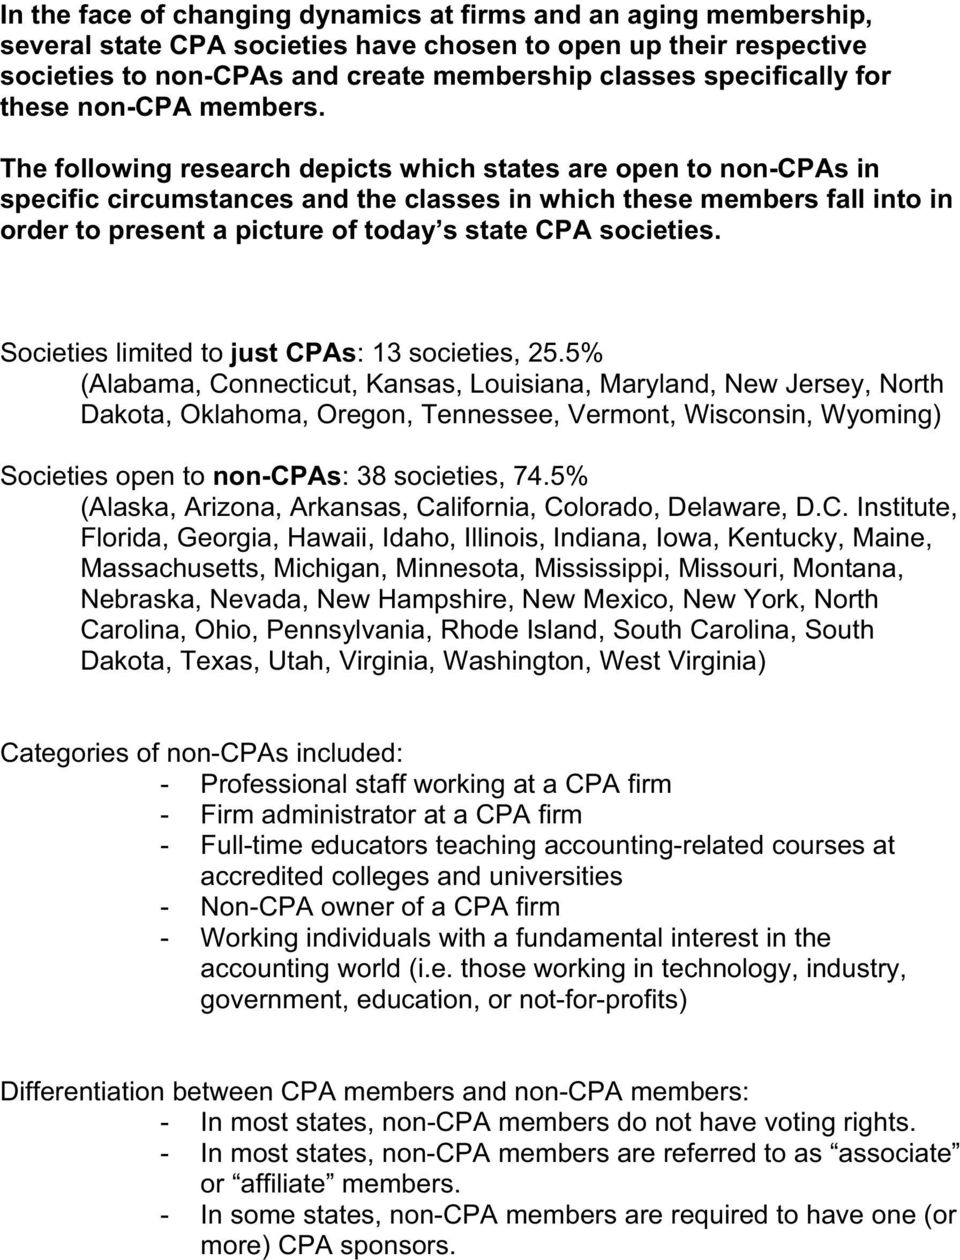 The following research depicts which states are open to non-cpas in specific circumstances and the classes in which these members fall into in order to present a picture of today s state CPA